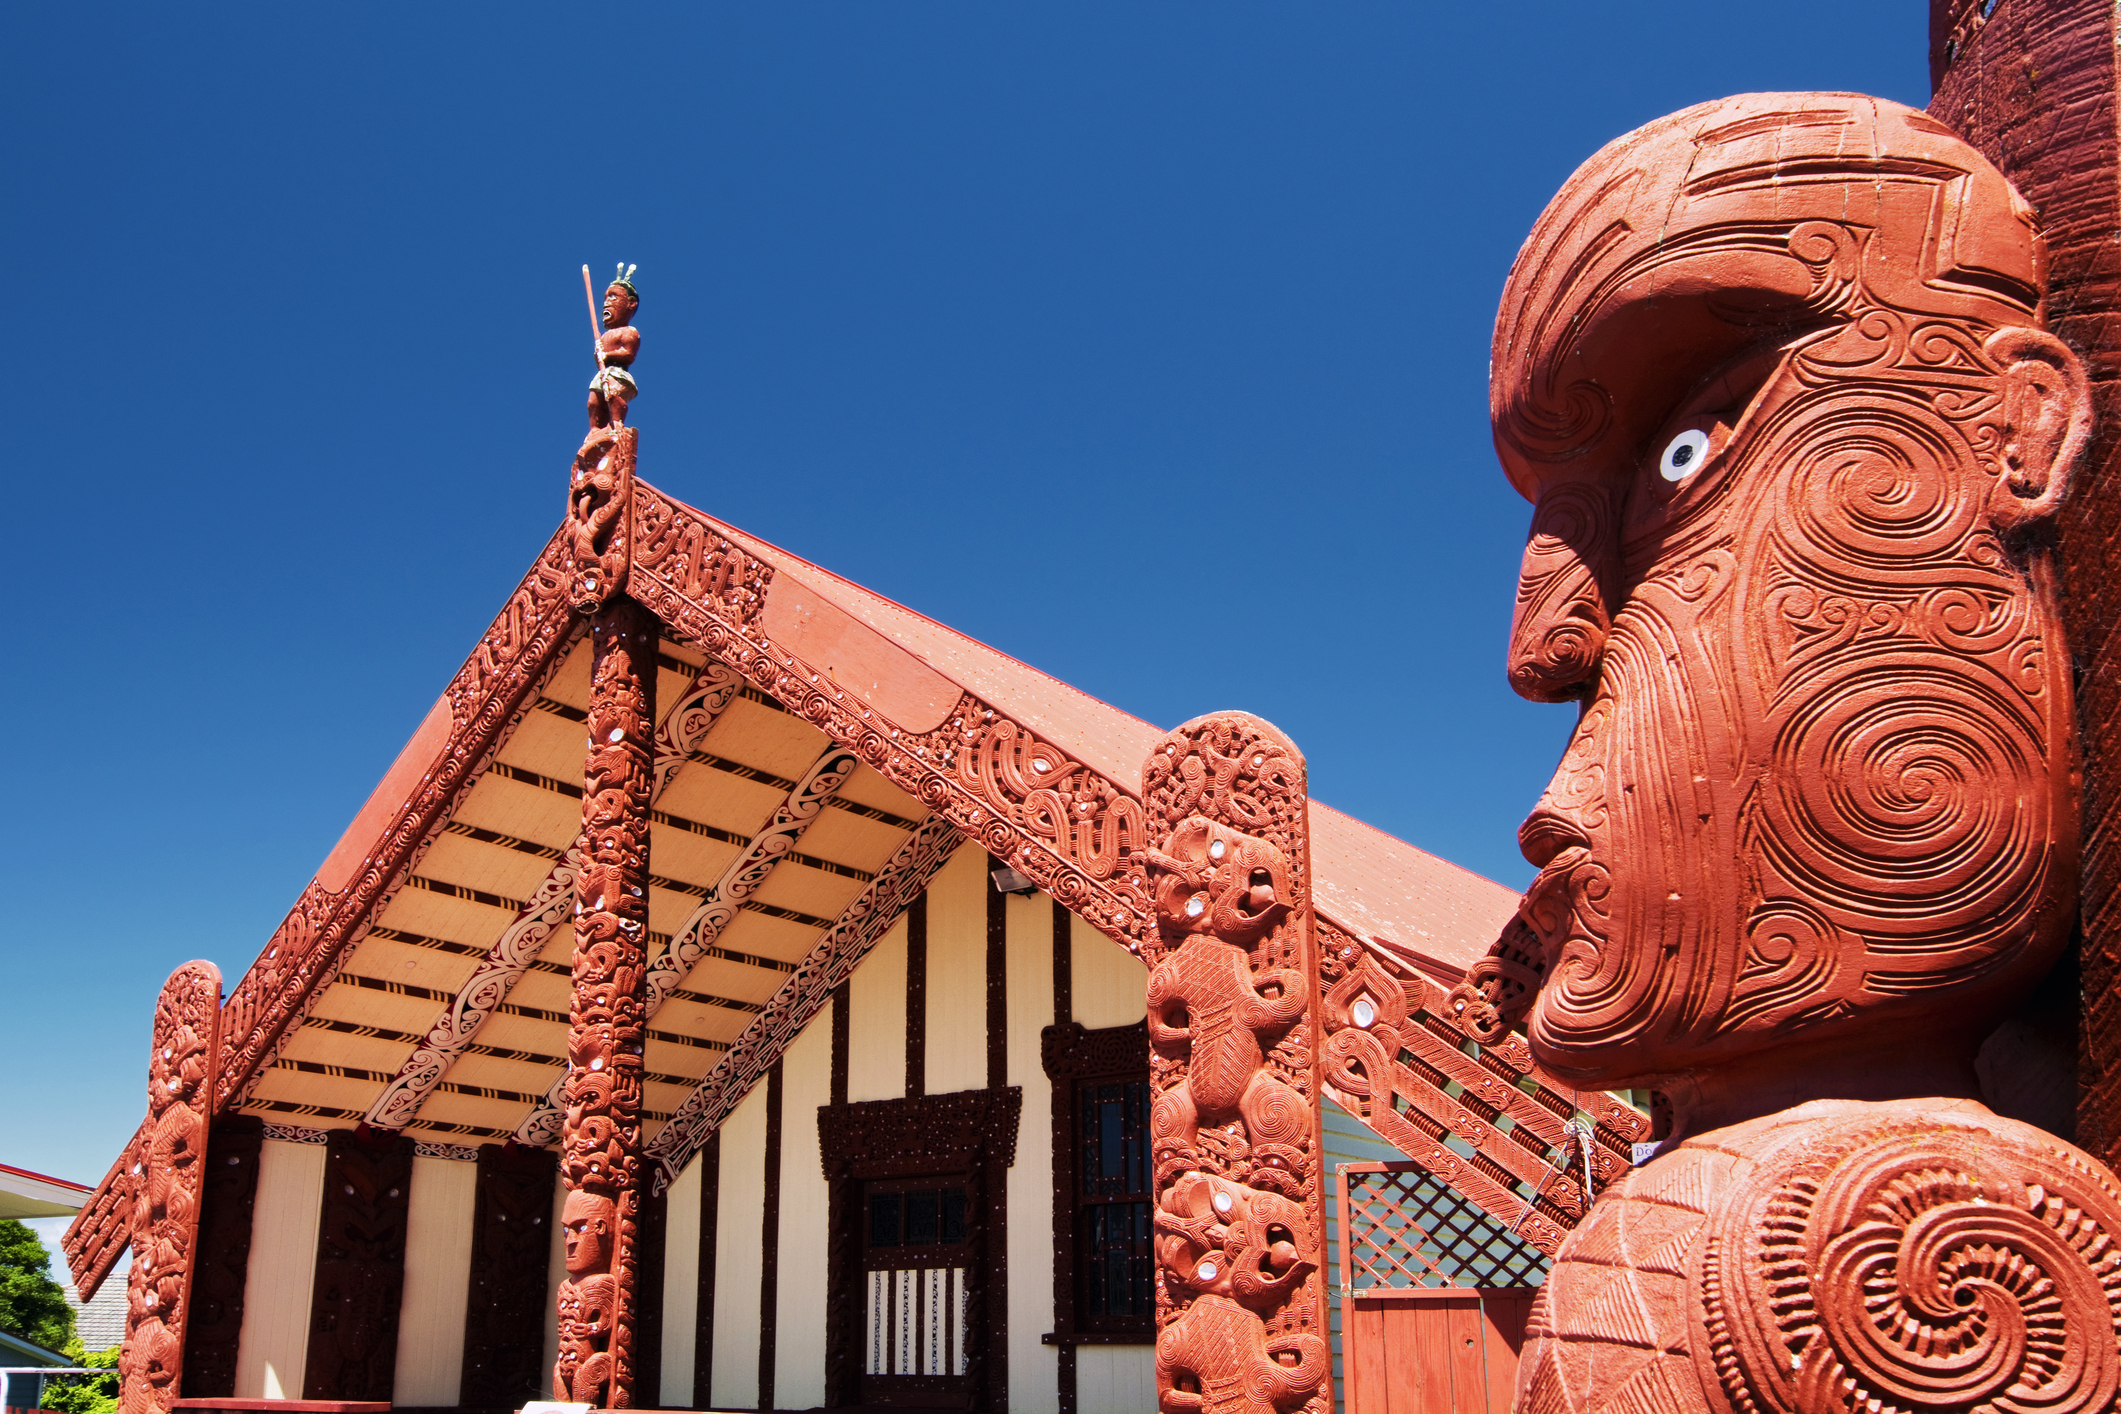 The local lumber gets put to good use in Maori carvings around Rotorua.